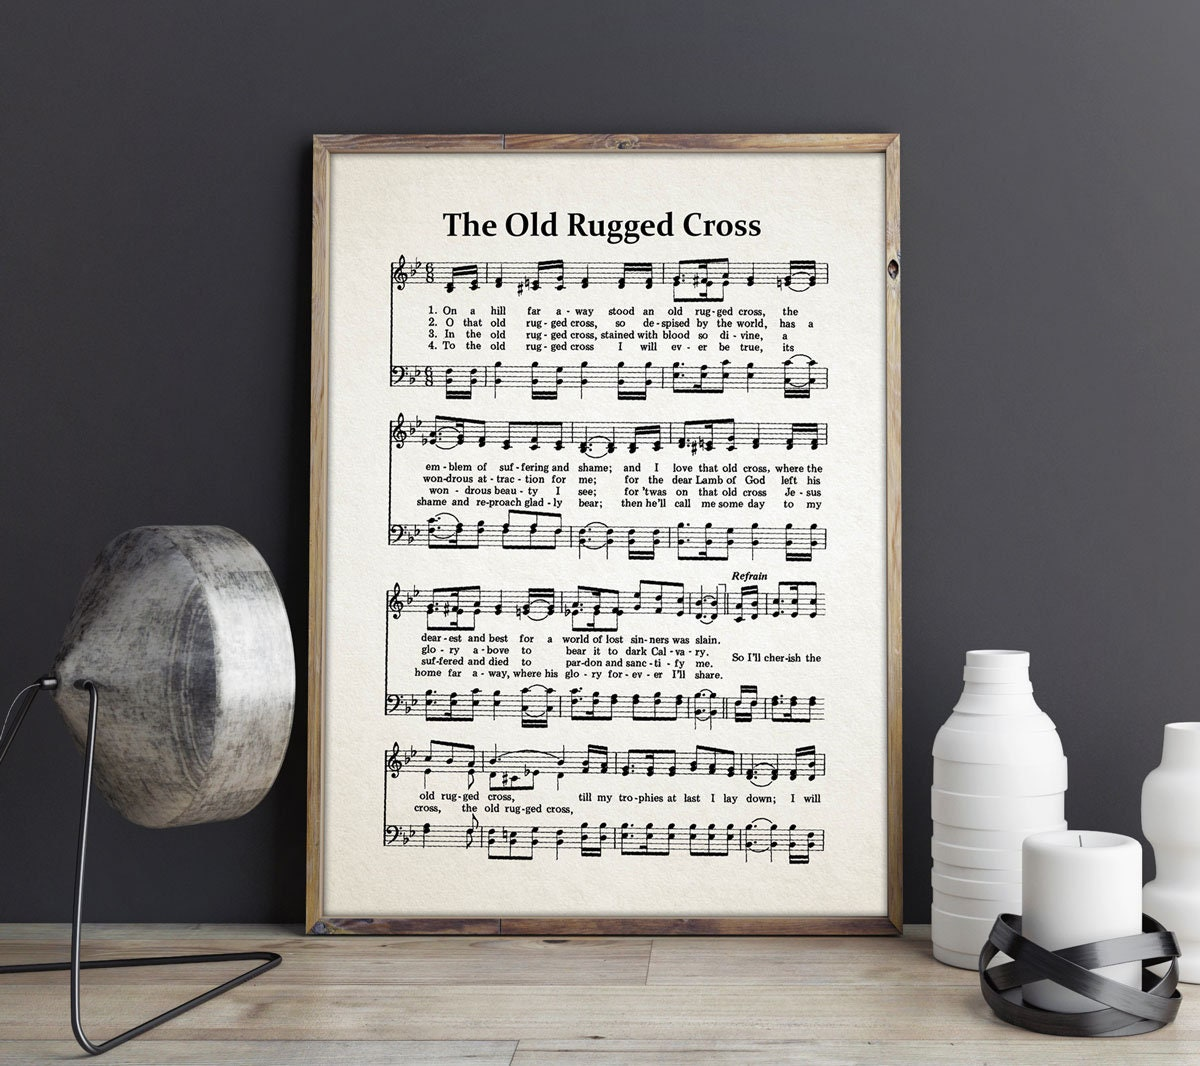 photo about Old Rugged Cross Printable Sheet Music named The Previous Rugged Cross Hymn Print Outdated Rugged Cross Poster